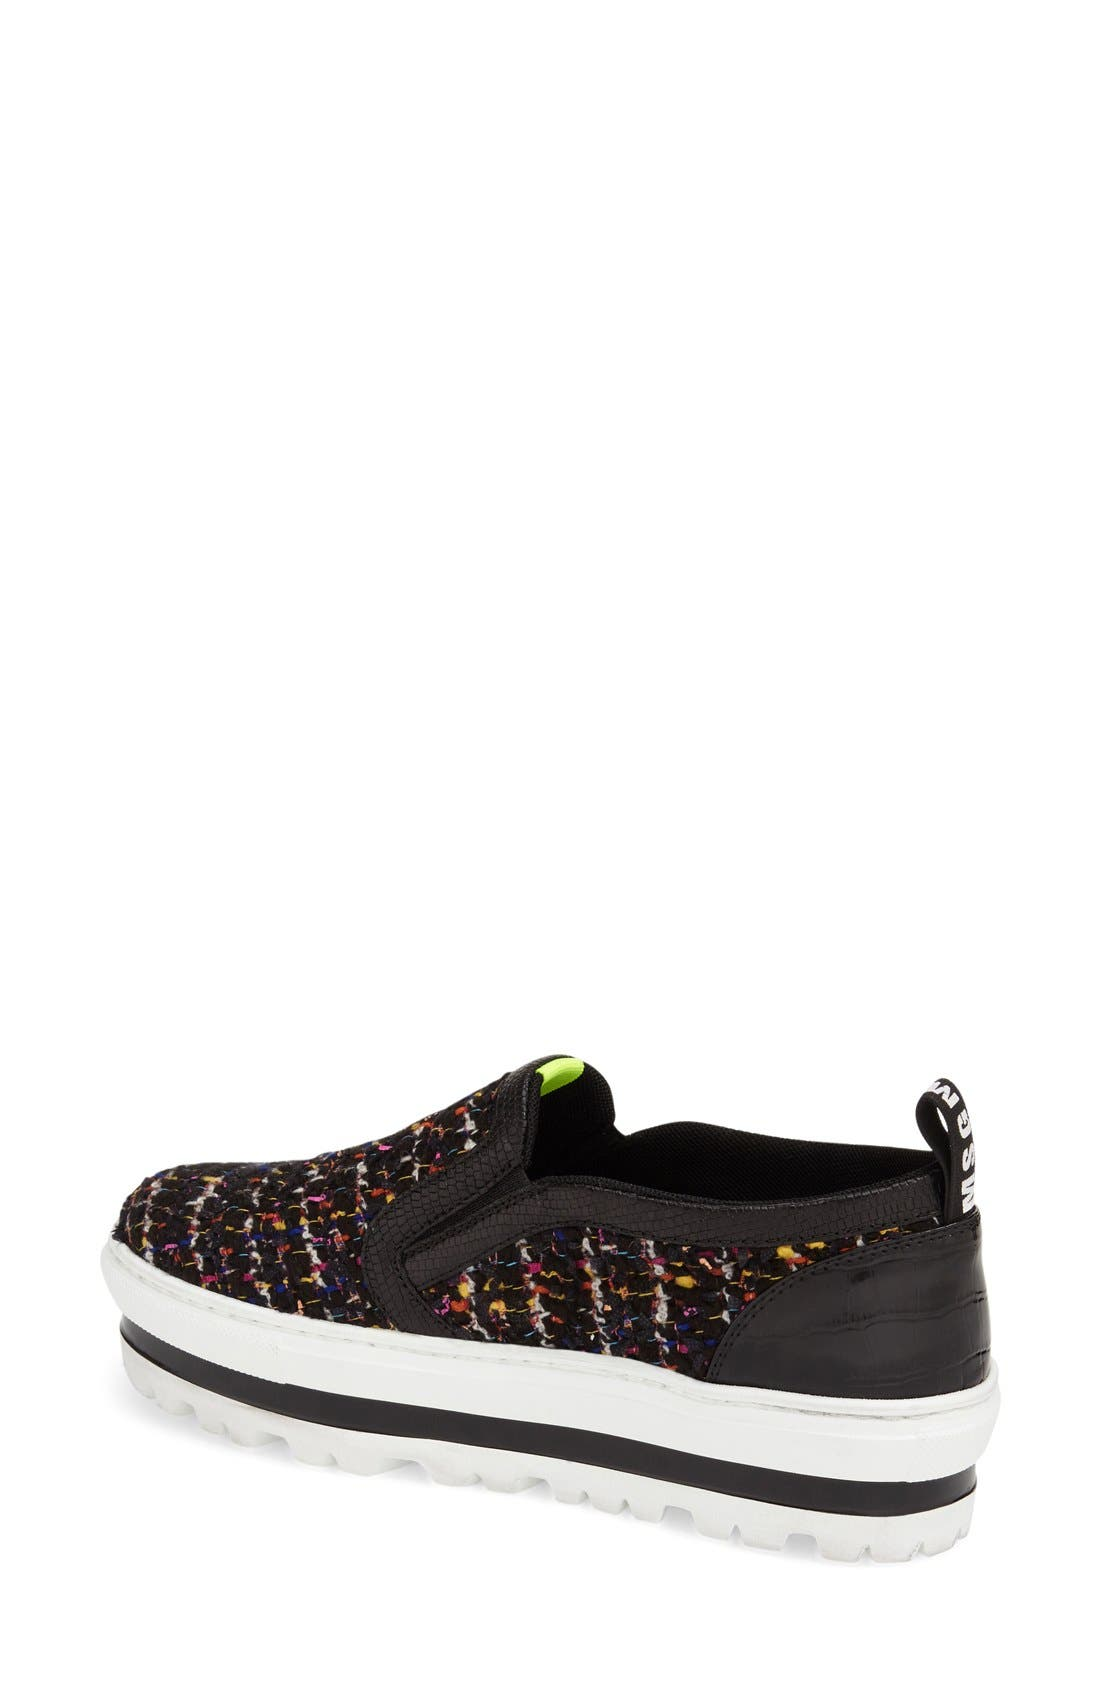 Alternate Image 2  - MSGM Tweed Platform Slip-On Sneaker (Women)